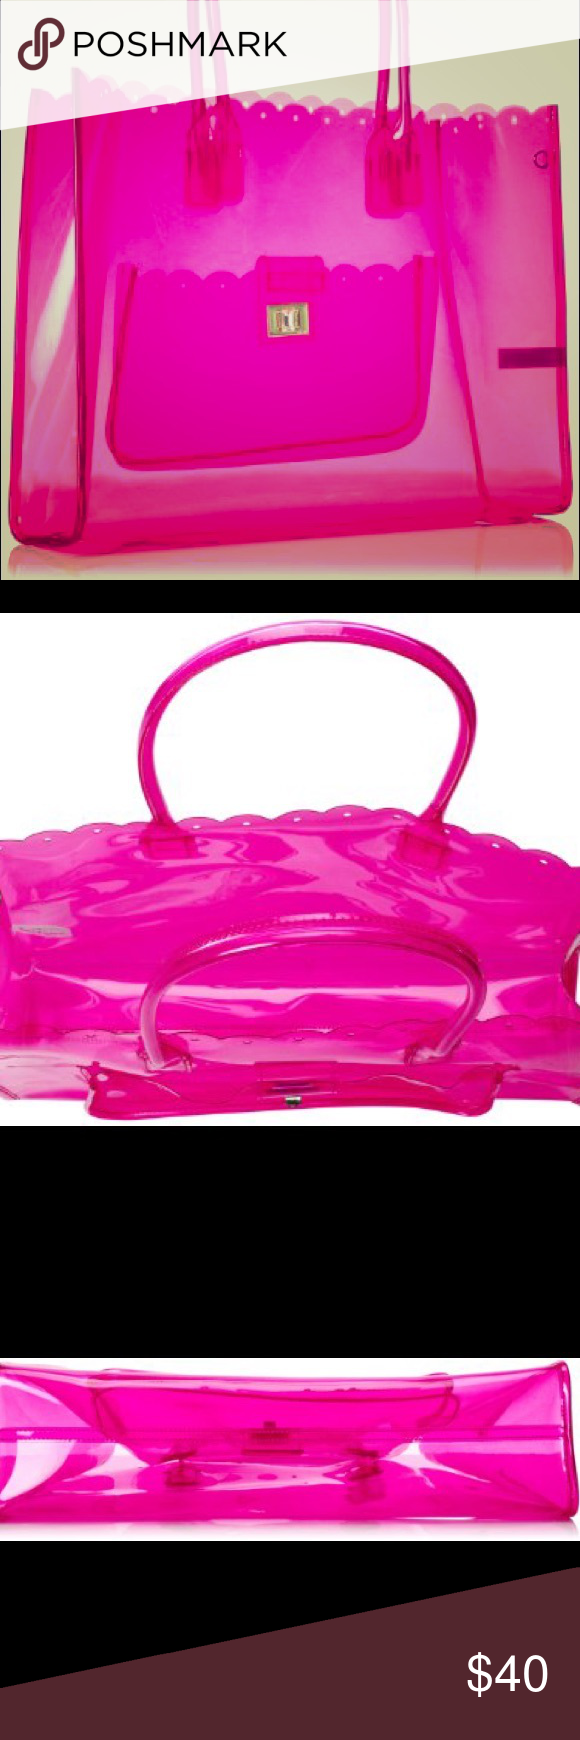 Juicy Couture plastic pink beach bag New with tags, but bought on Posh and she told me she used it once and when it gets hot it kind of molds weird, so it's kind of oddly shaped but can easily be fixed Juicy Couture Bags